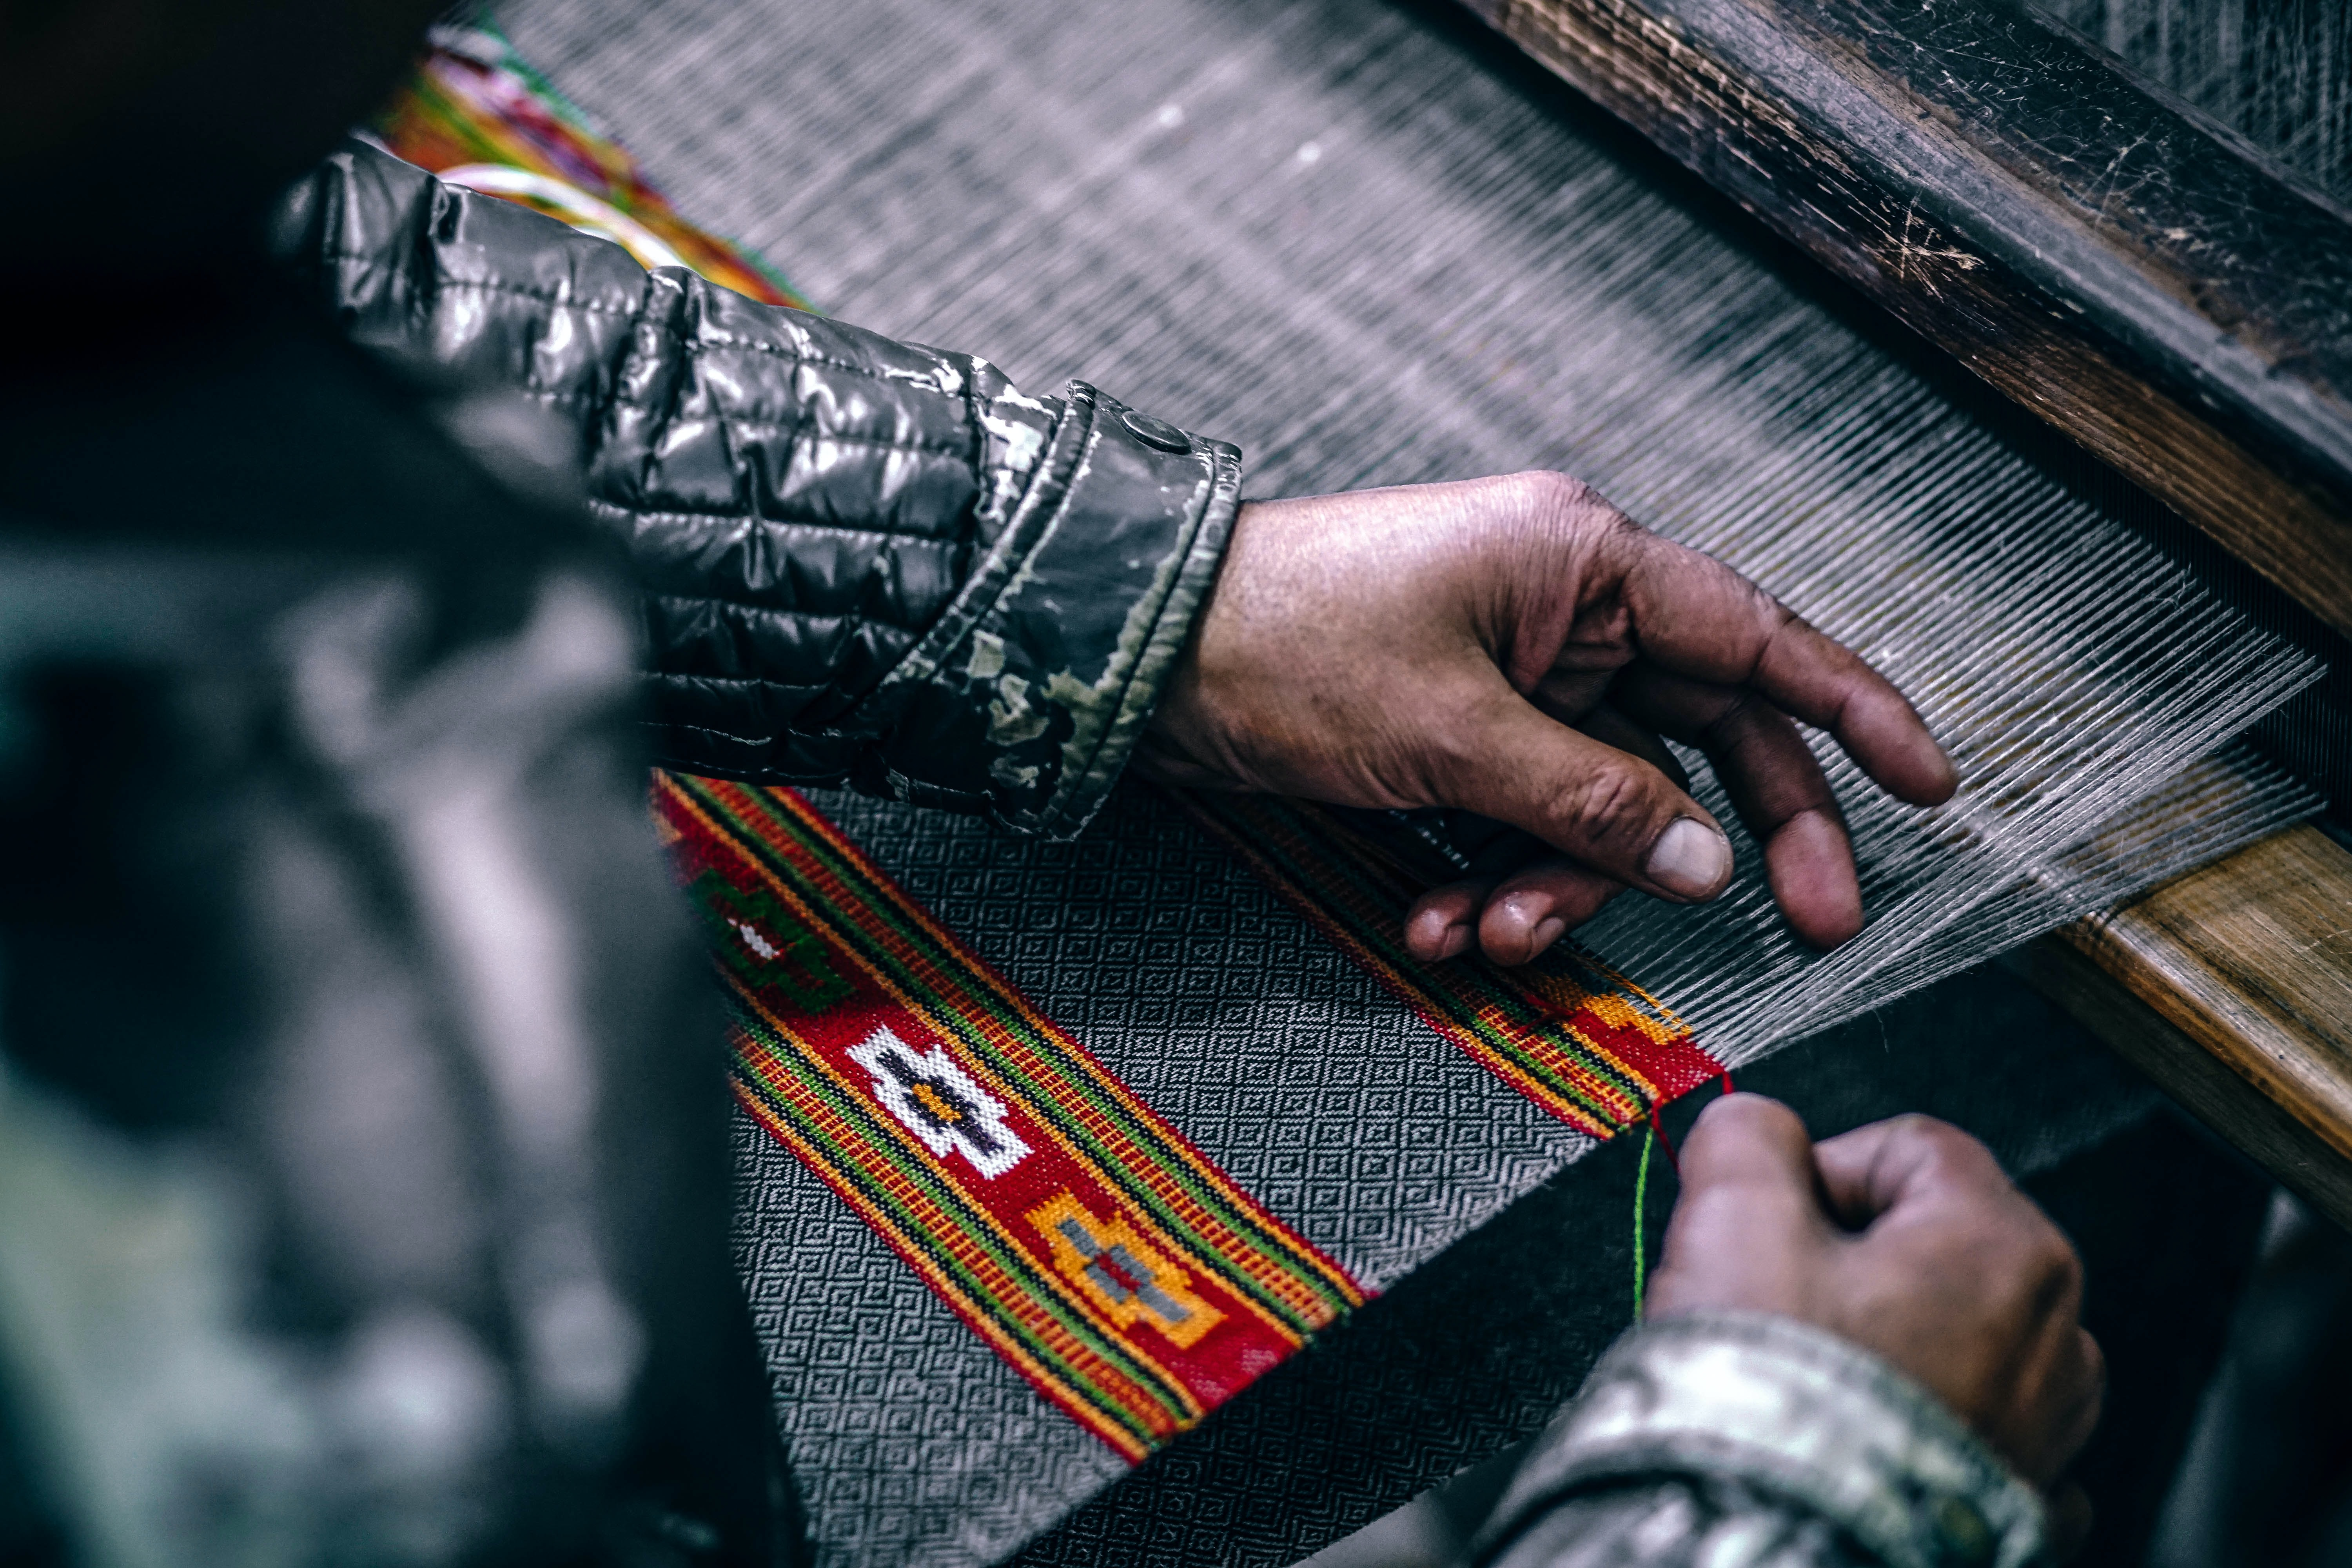 A person wearing a black quilted jacket weaving thread to create a textile on a loom in Manu Temple Road